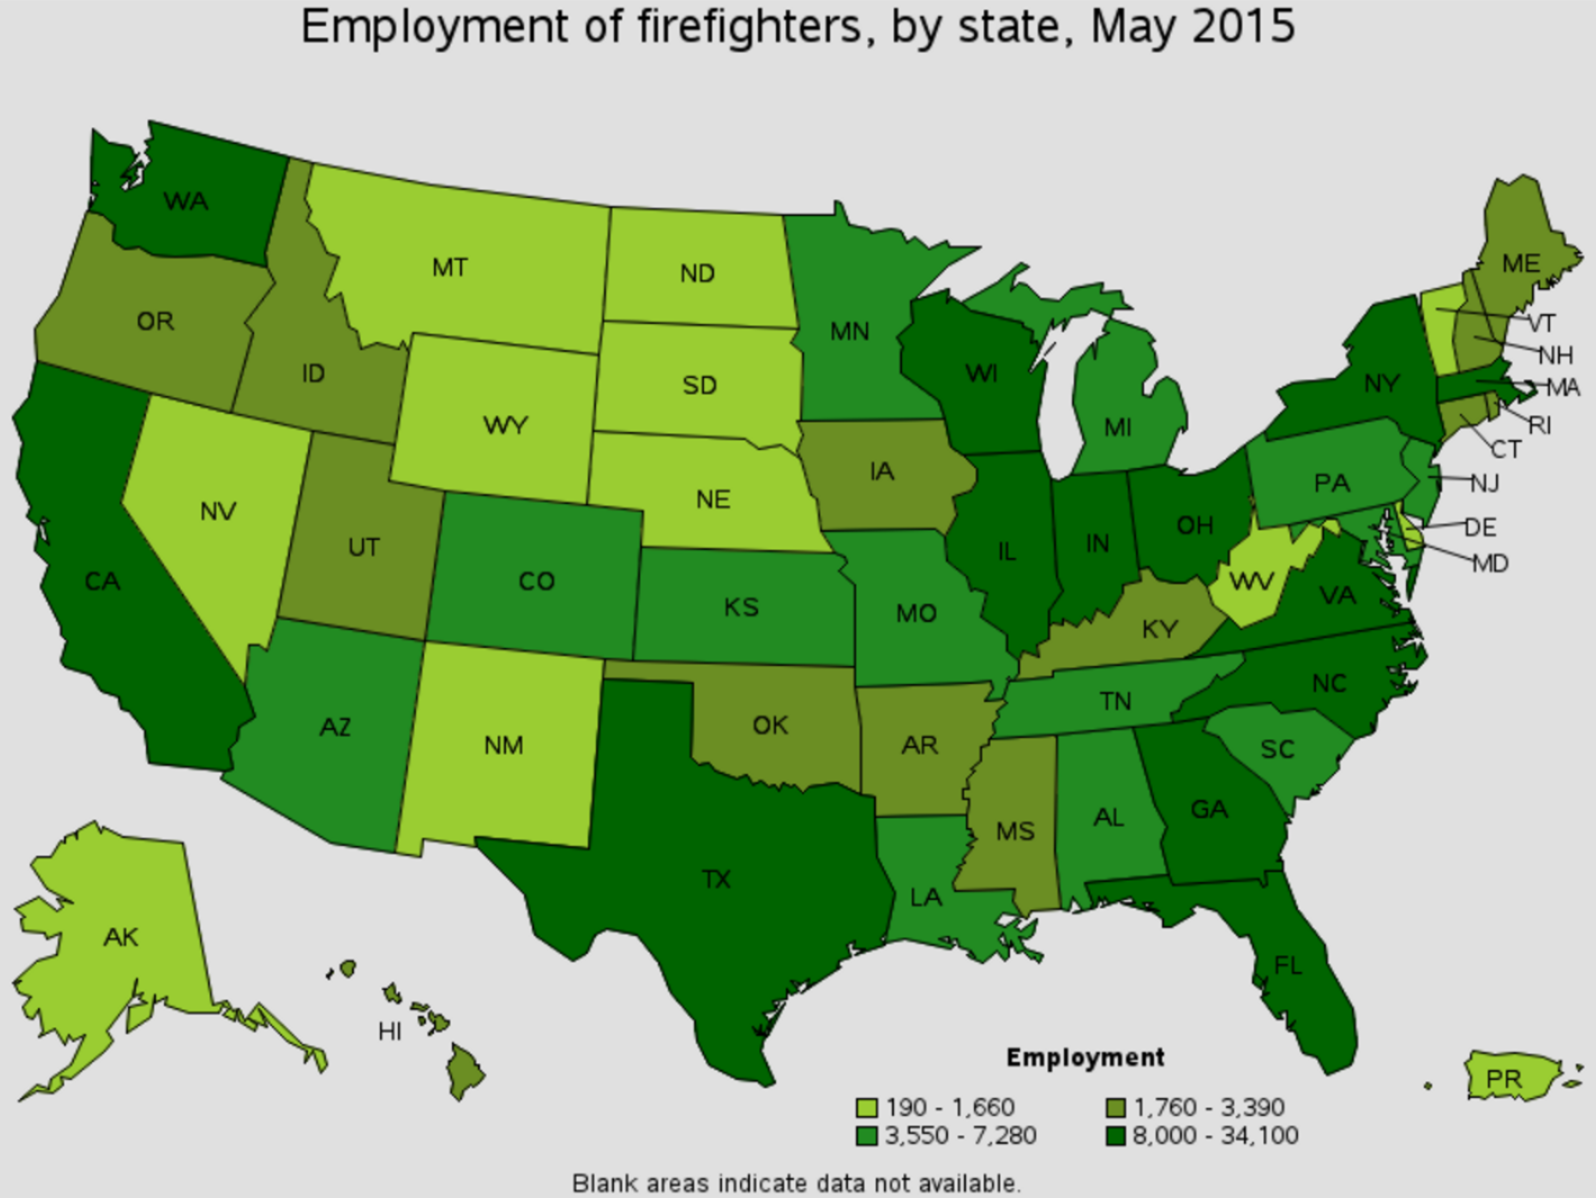 firefighter job outlook by state Williamson West Virginia